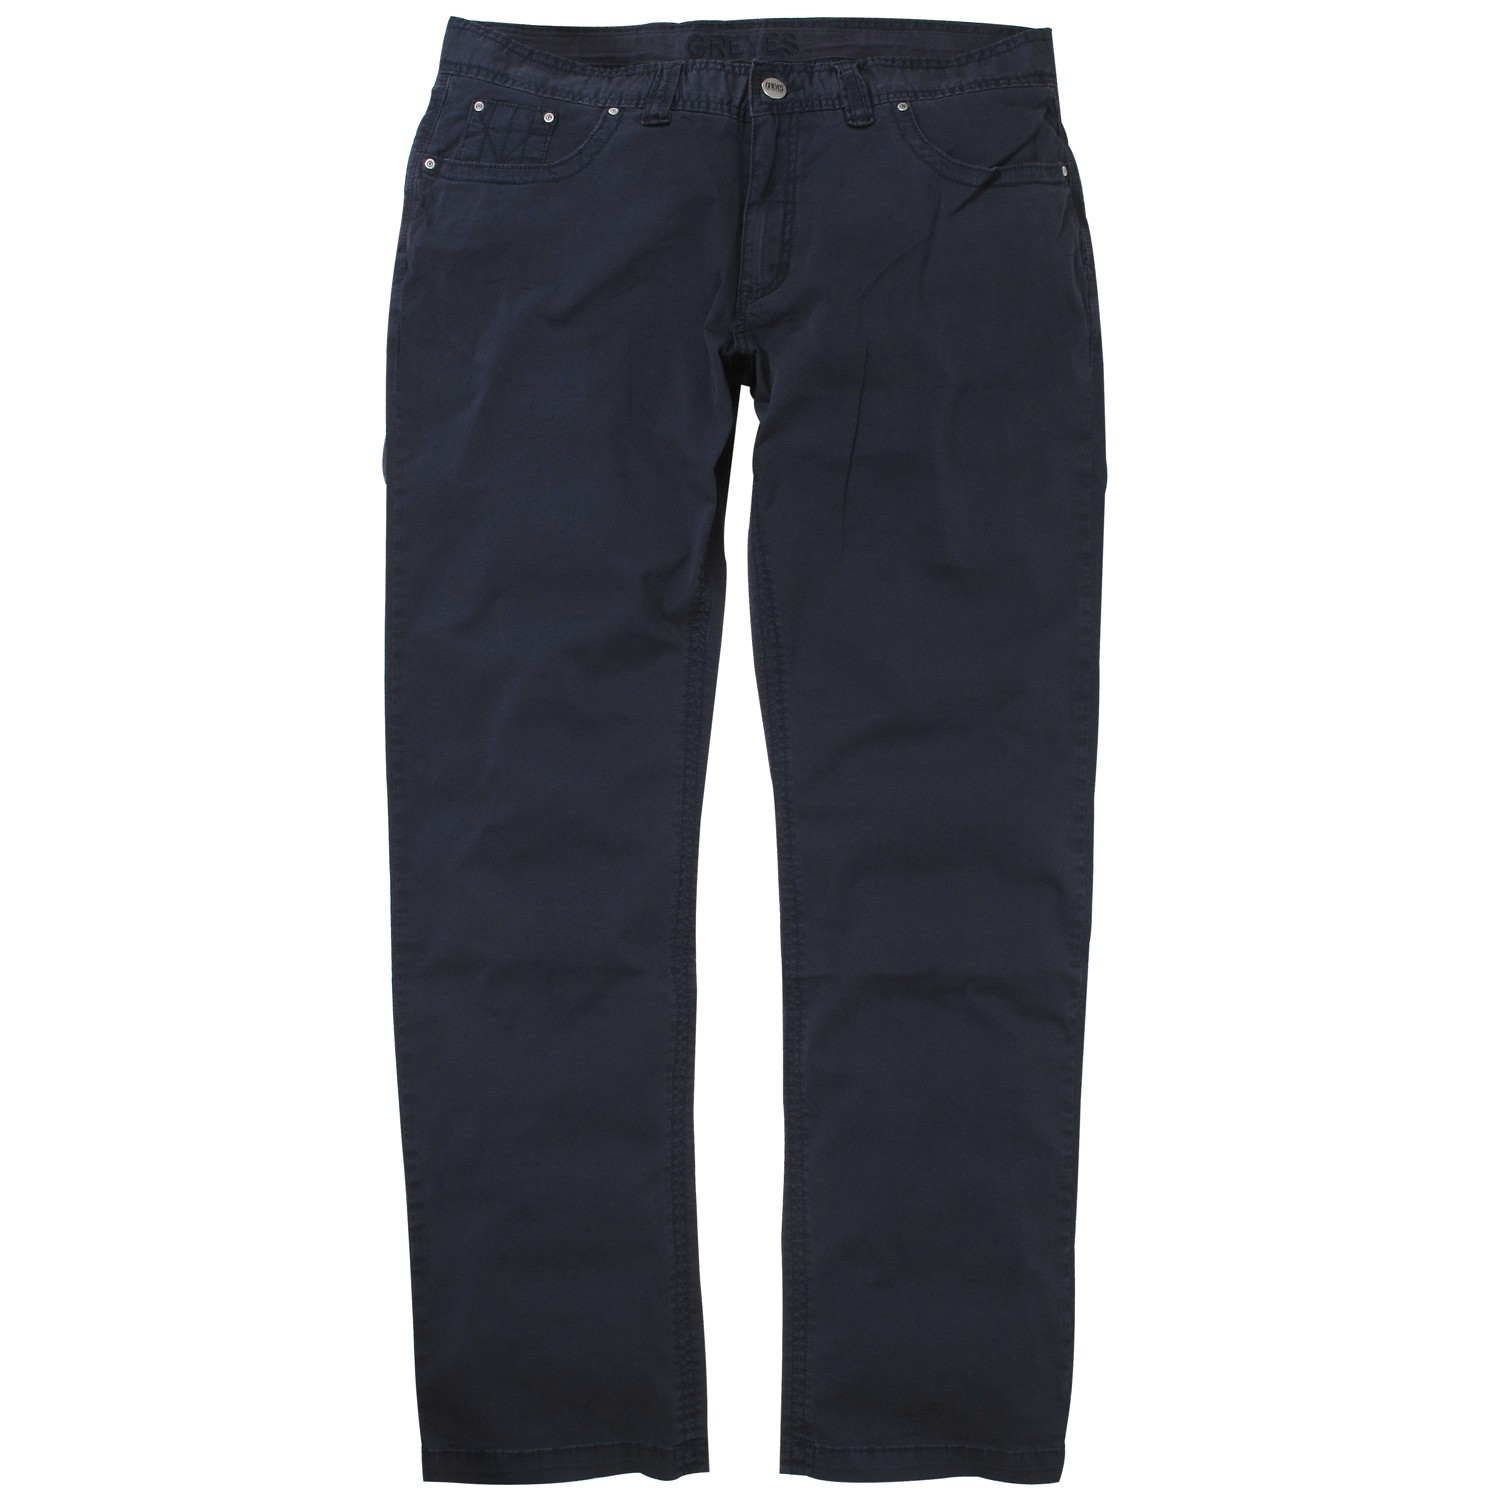 Detail Image to Dark blue five-pocket-pants by Greyes in extra large sizes up to 64